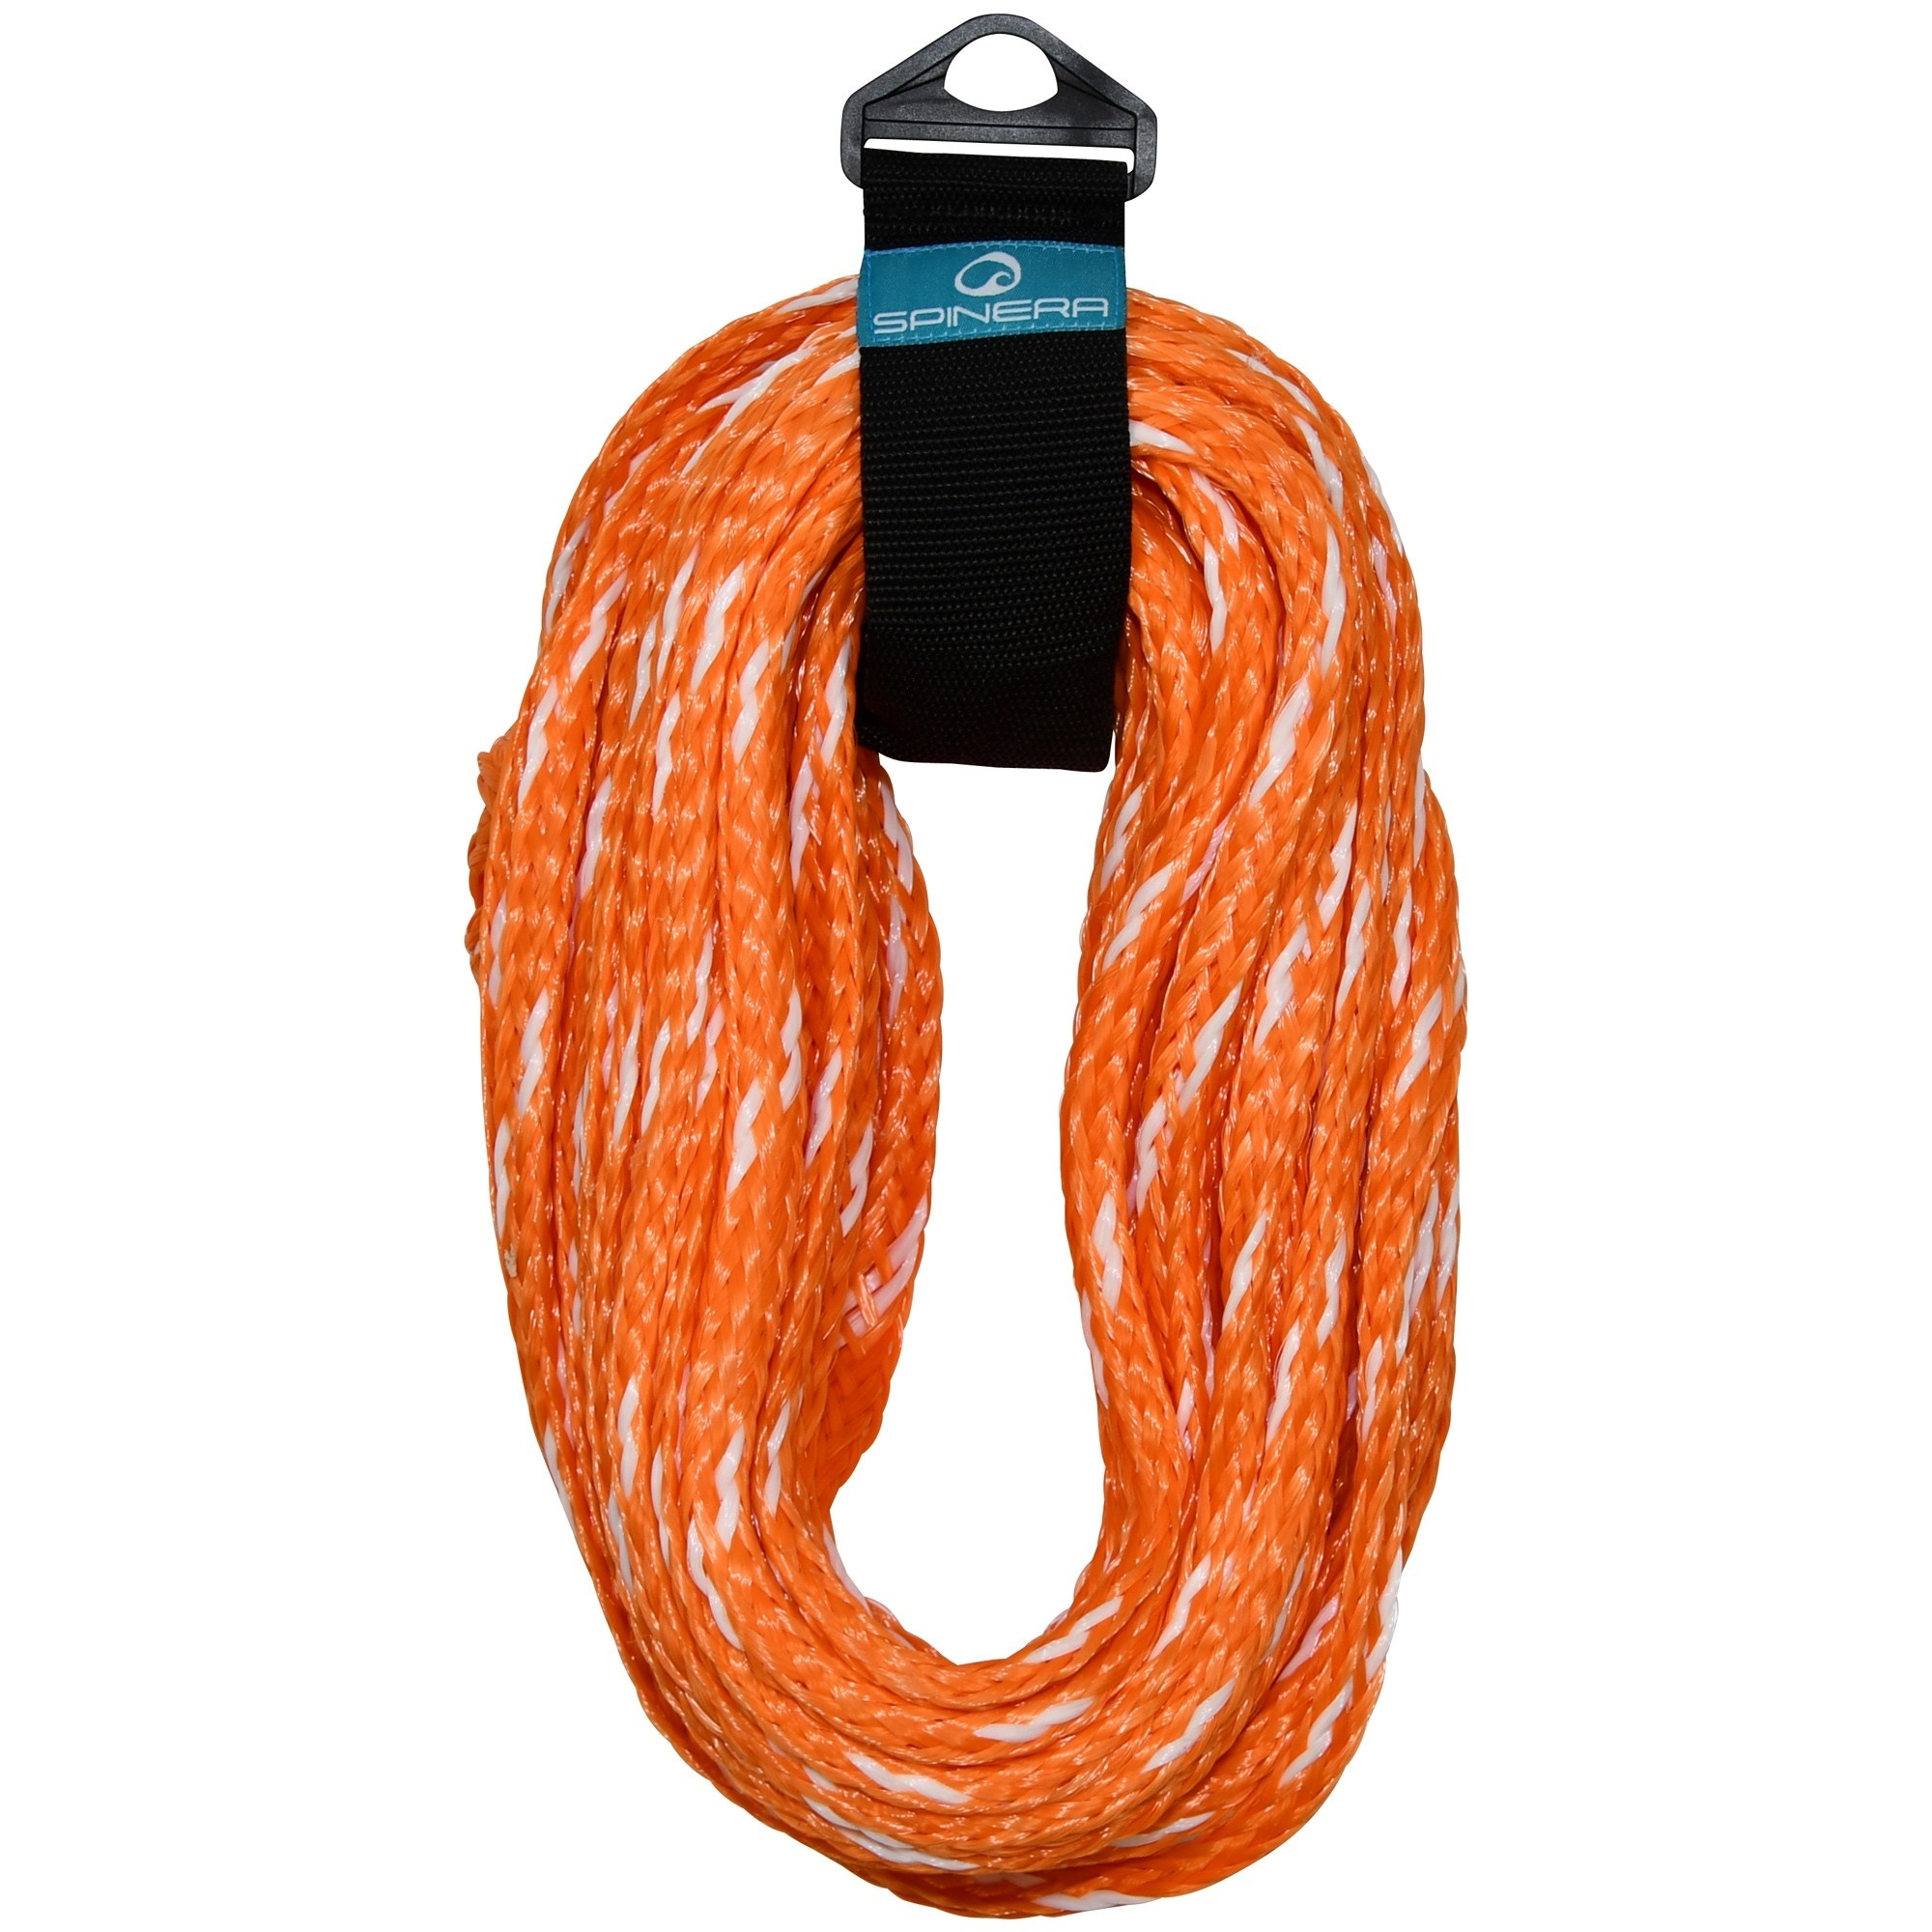 Towable Rope 2 - Two persons